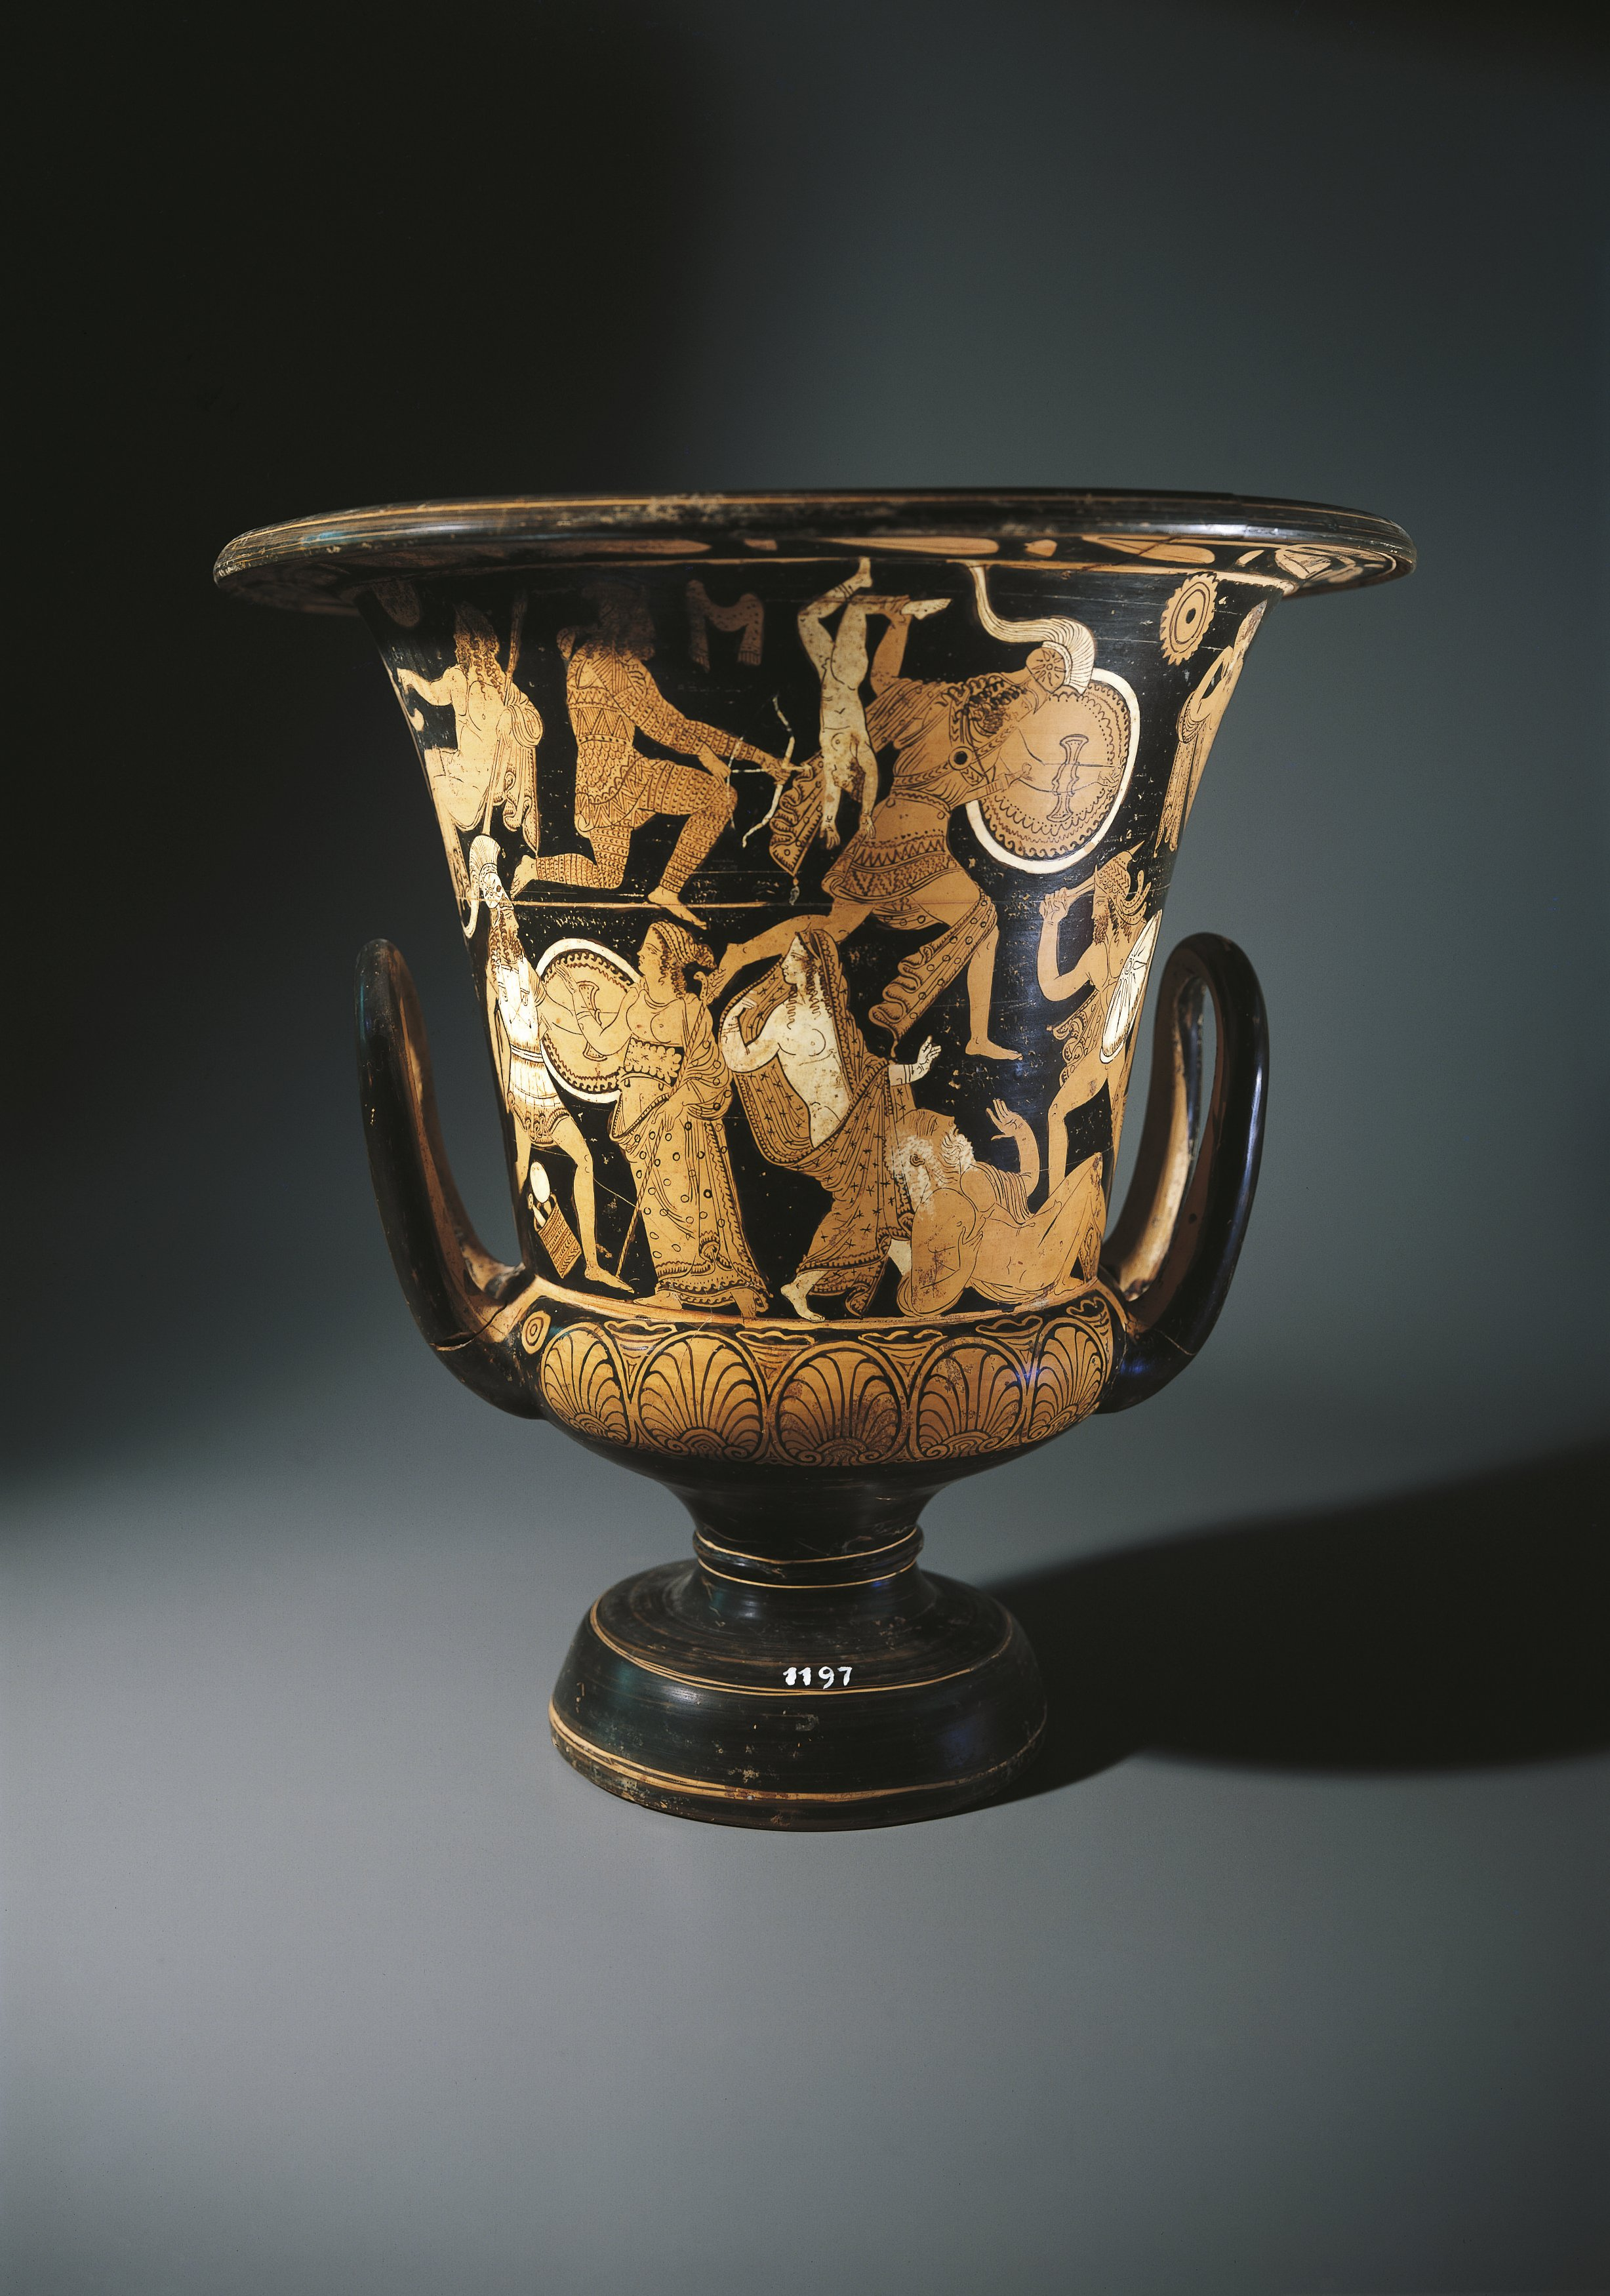 Red-figure pottery, calyx krater depicting Neoptolemus, Astyanax, Helen of Troy and Priamo on ground, by Nazzano Painter, from Civita Castellana